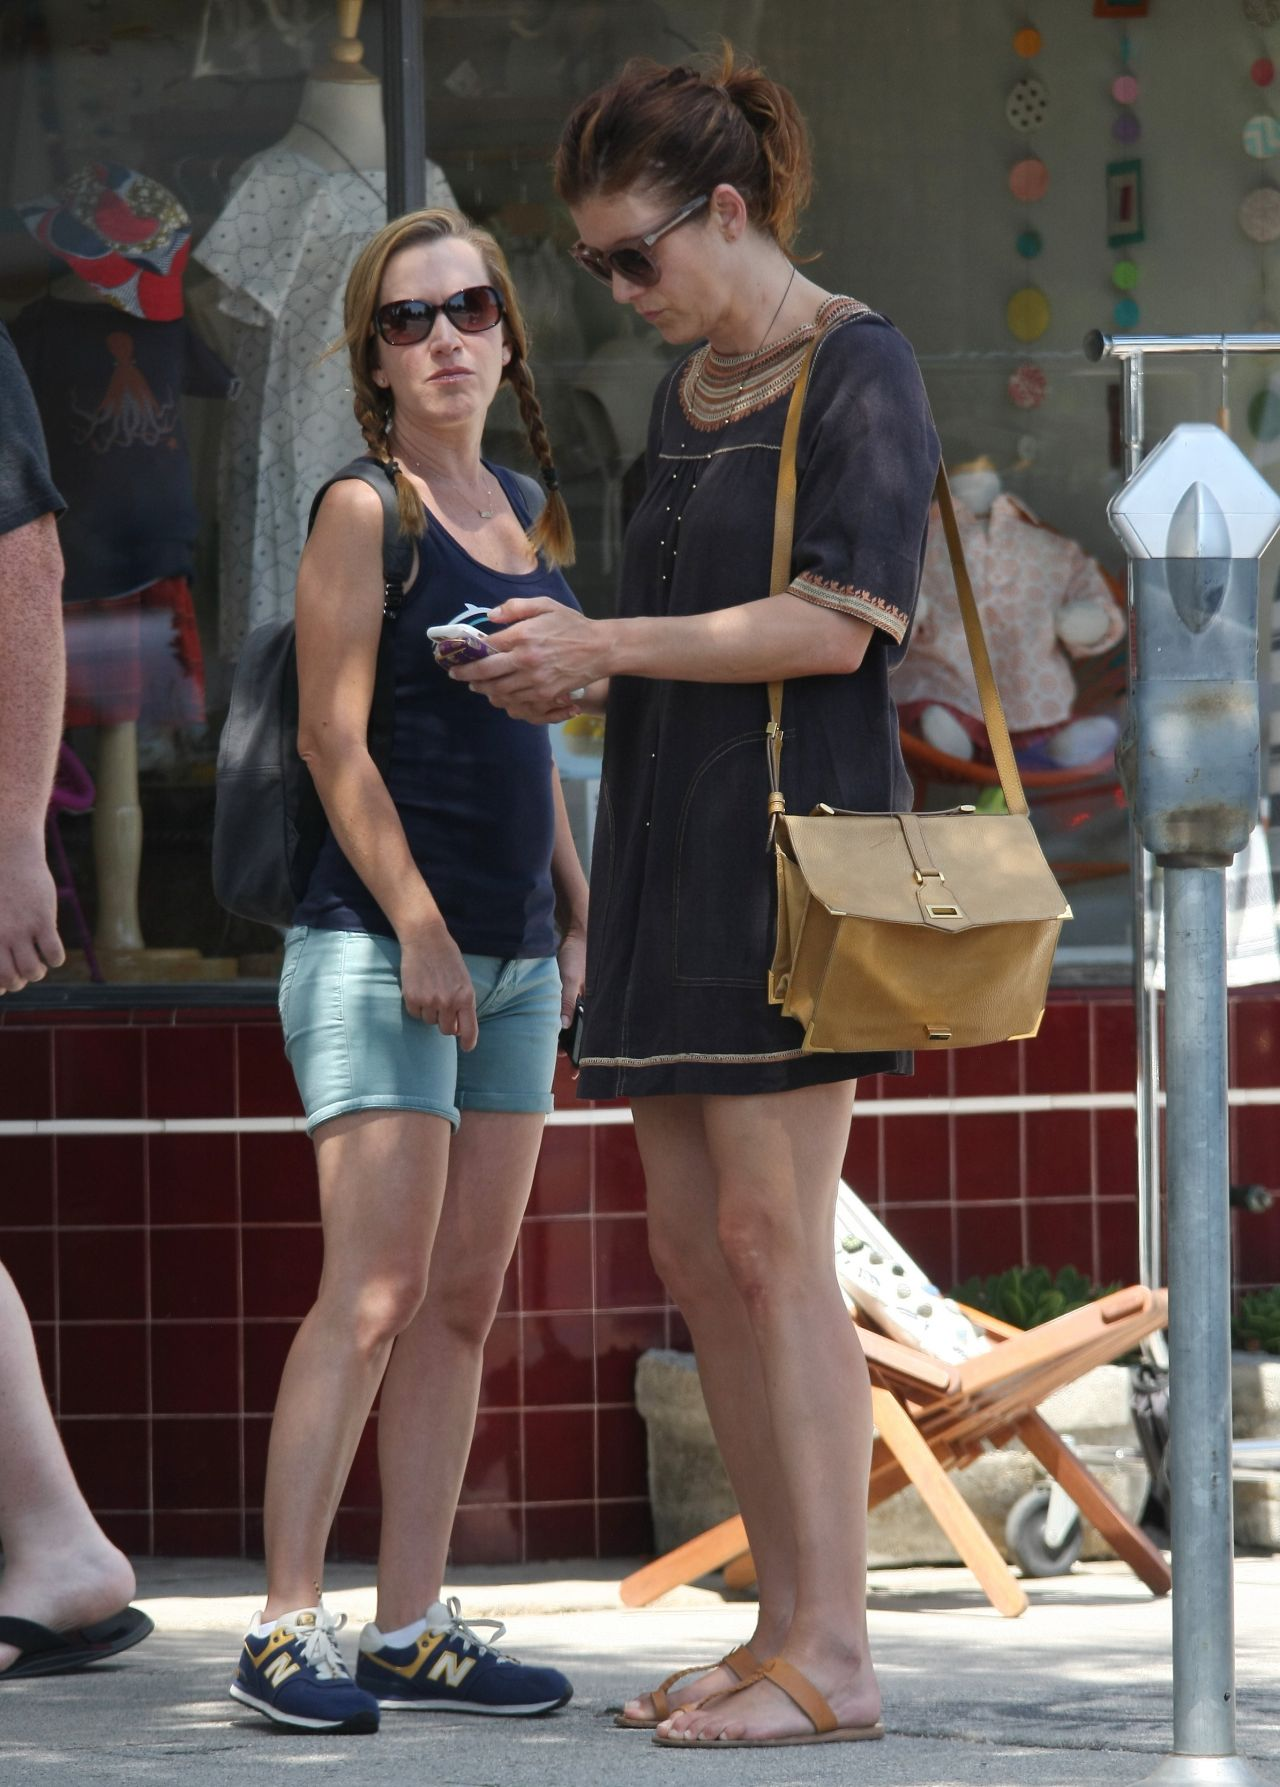 Kate Walsh And Angela Kinsey Out In Studio City 07 19 2017